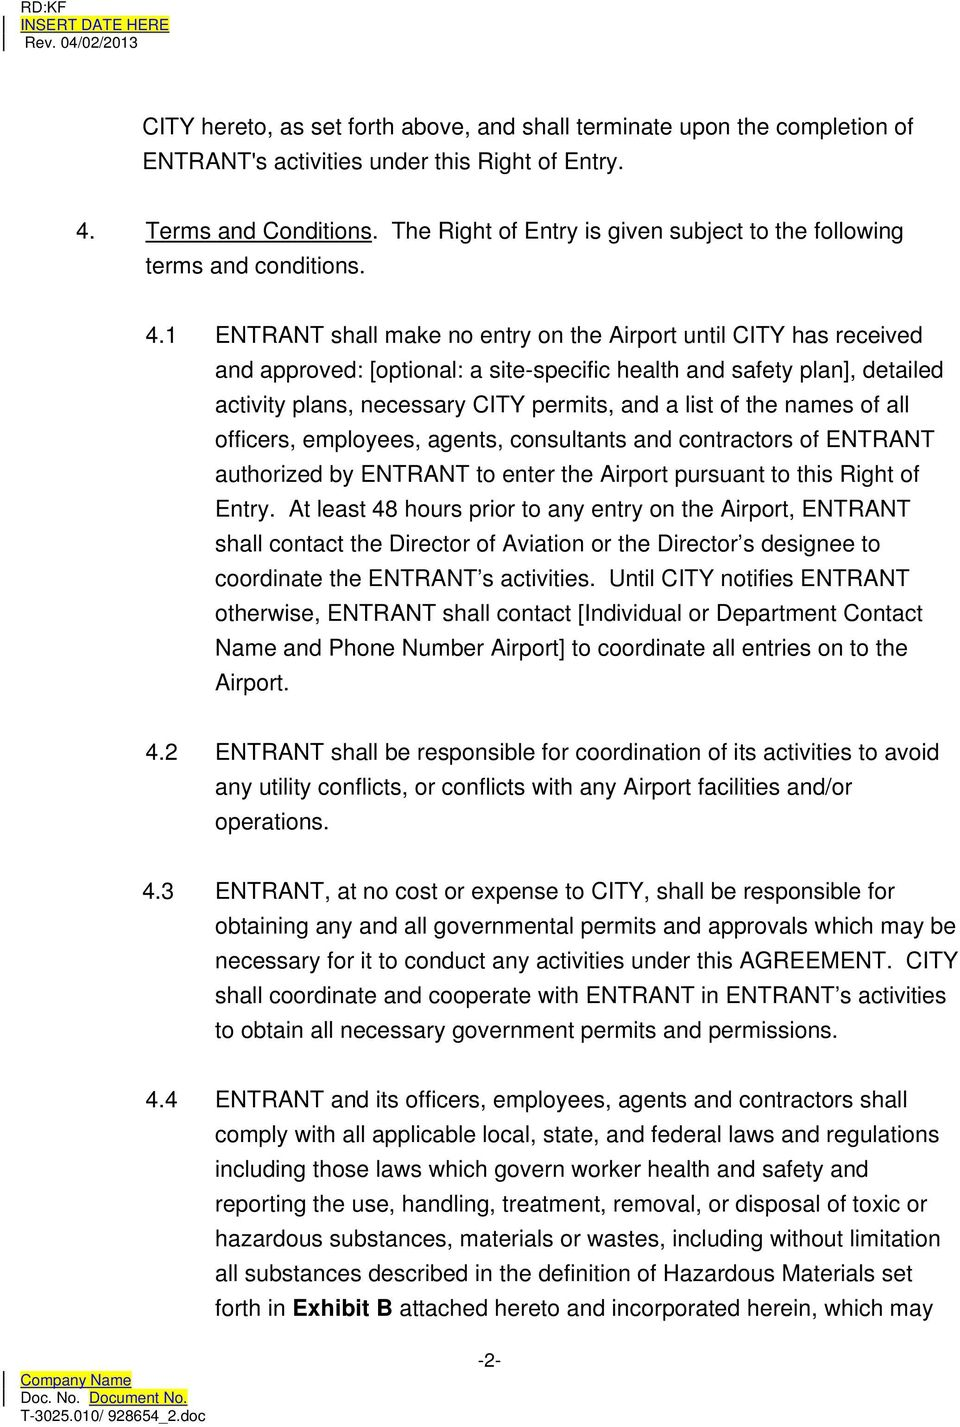 1 ENTRANT shall make no entry on the Airport until CITY has received and approved: [optional: a site-specific health and safety plan], detailed activity plans, necessary CITY permits, and a list of